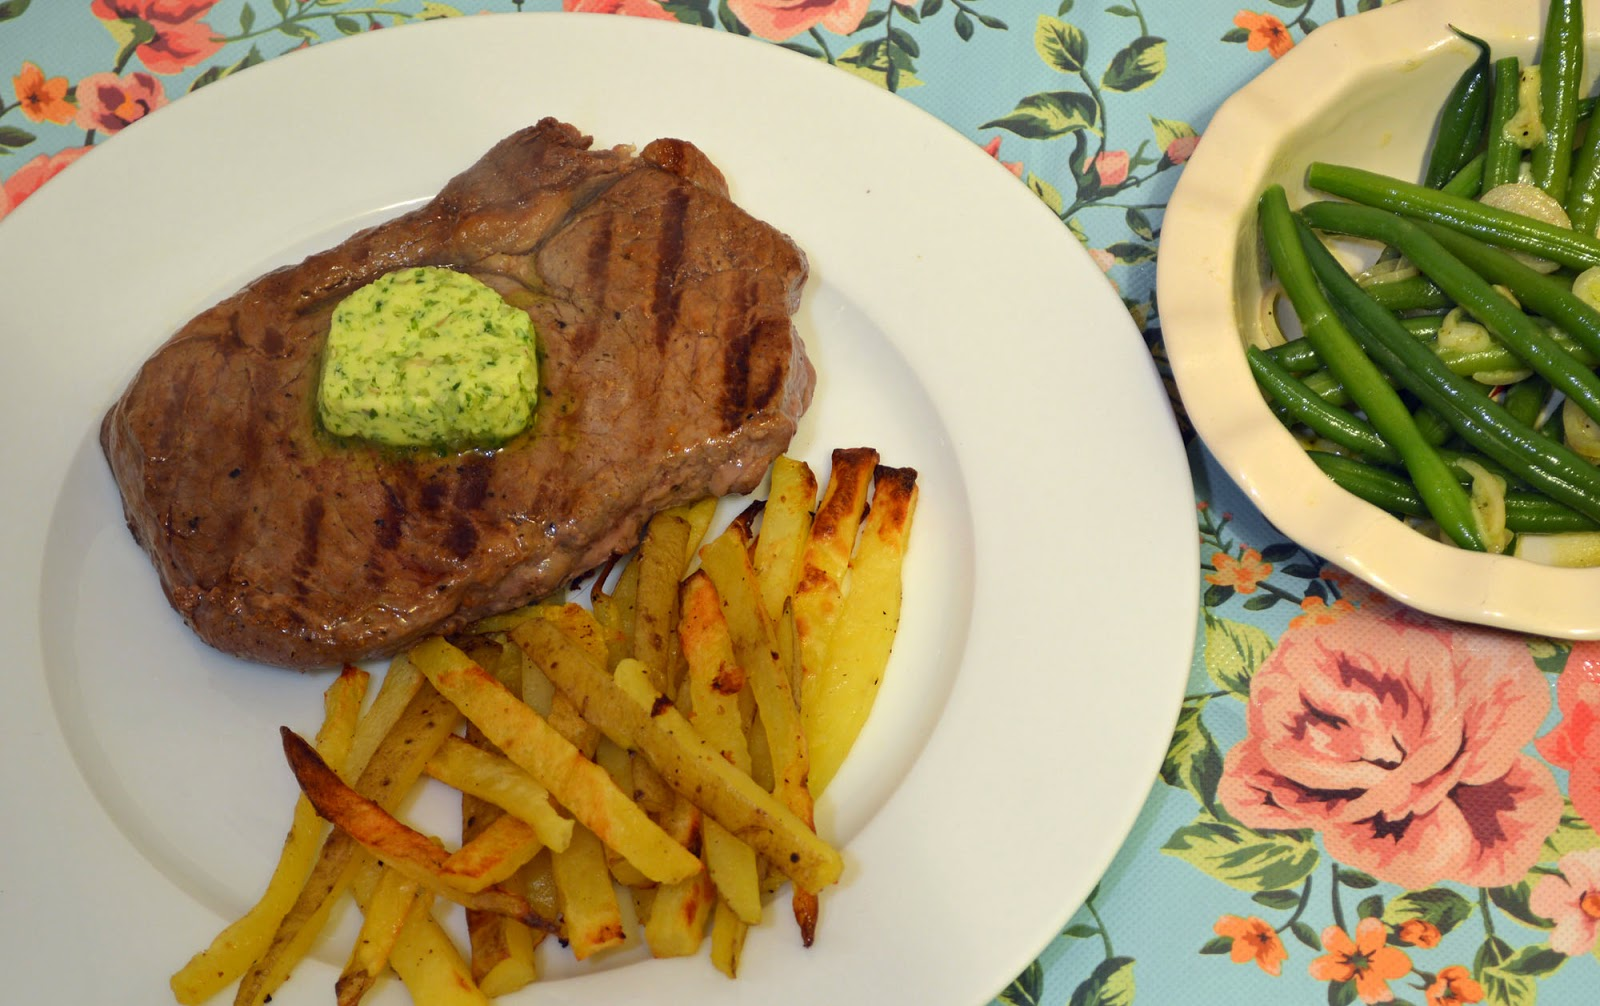 Steak and home made herb butter and home made chips